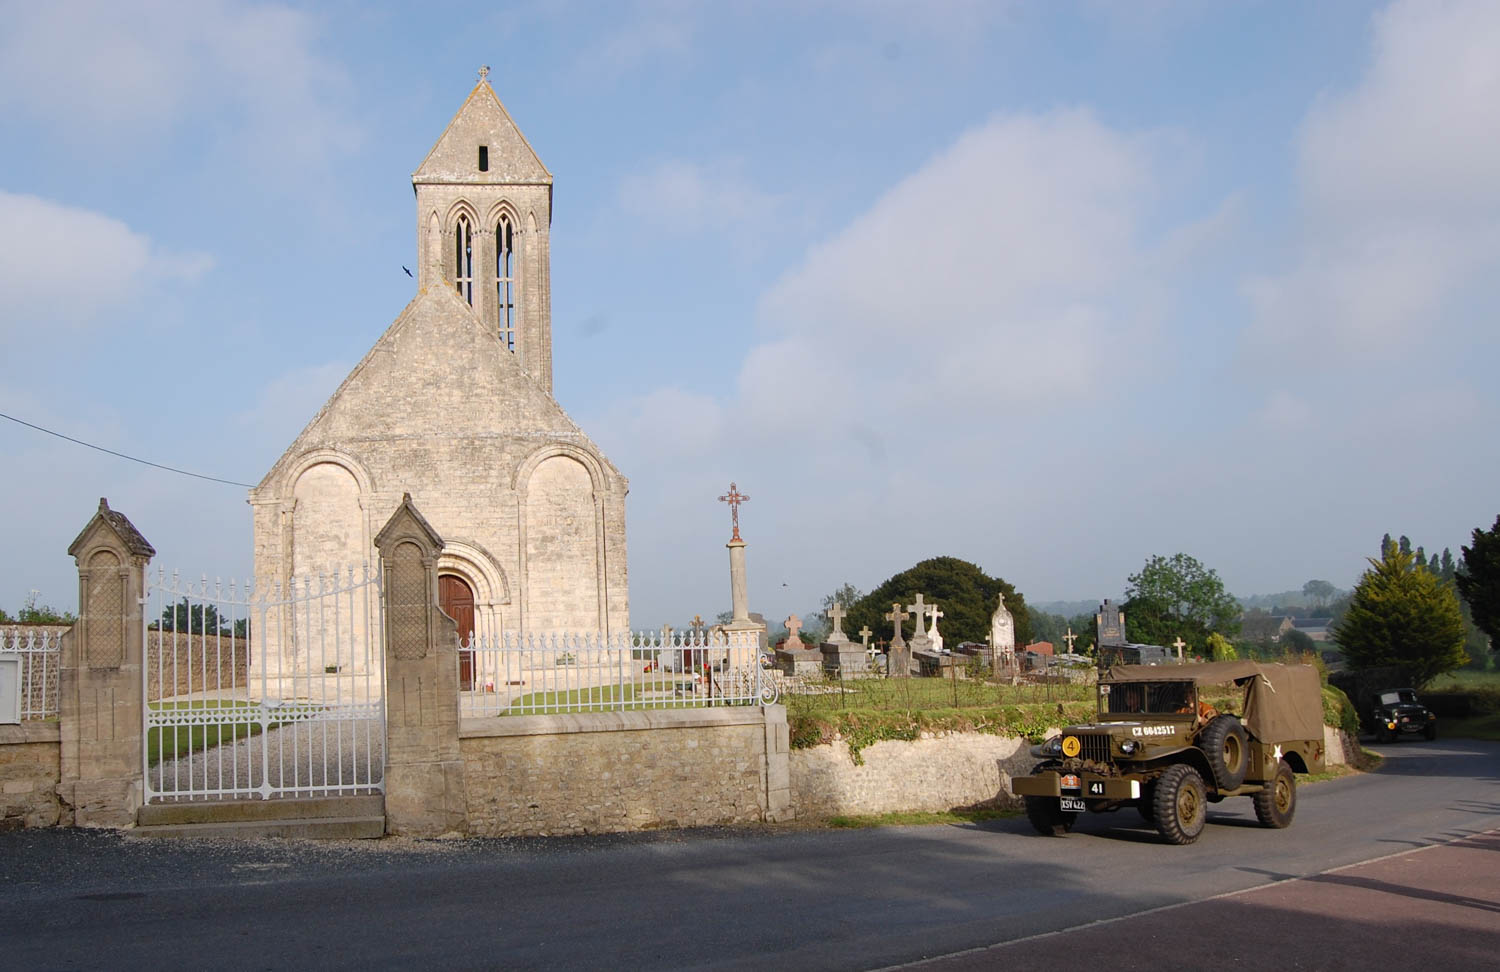 Members of the MVT in a Dodge weapons carrier convoy pass the Eglise Saint-Romain church near Etreham in Normandy, not far from where British and Canadian infantry units landed on D-Day.